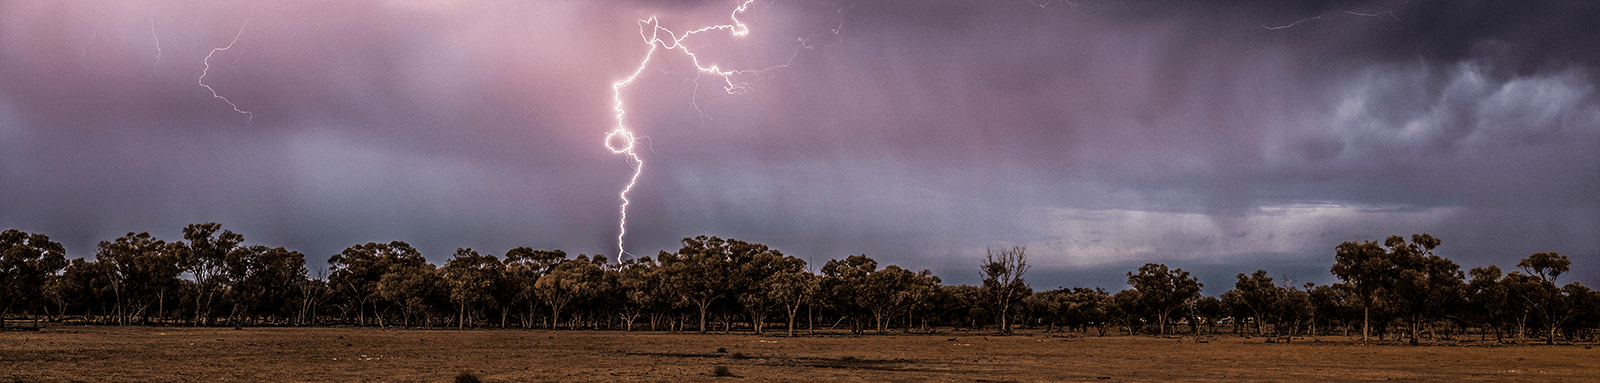 Lightning strikes over an empty field.